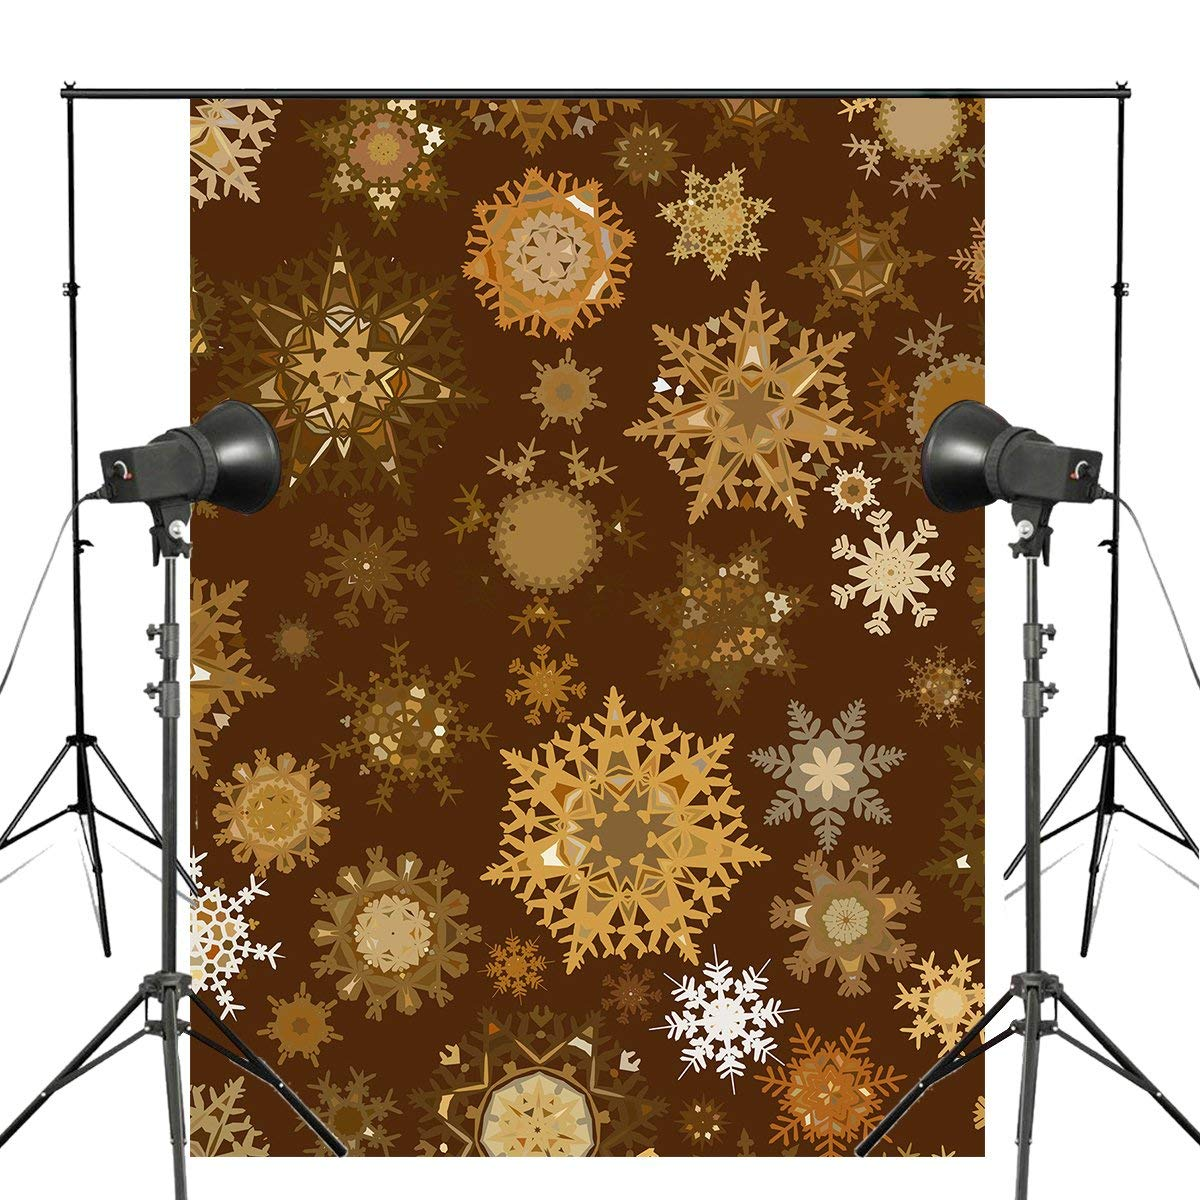 Yellow Snowflake Photography Backdrops Children Photo Studio Wallpaper 5x7ft-in Photo Studio Accessories from Consumer Electronics